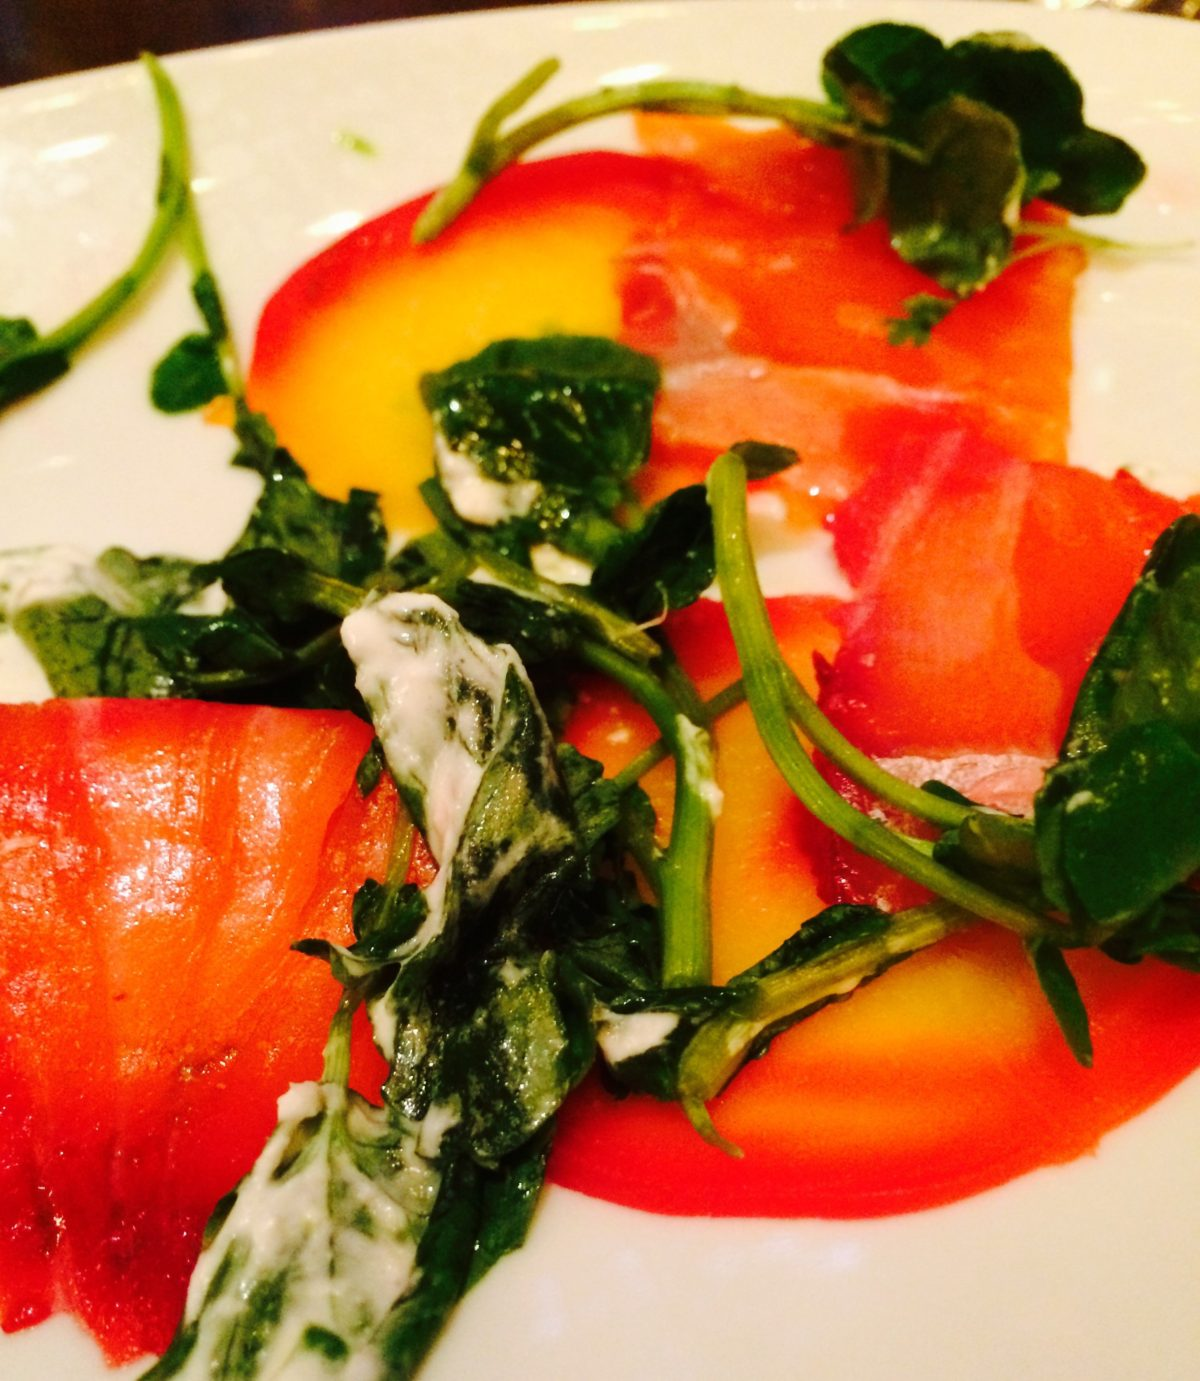 beet horseradish cured salmon gravlax from Deschutes Brewery Beer Dinner at Cook Hall Dallas